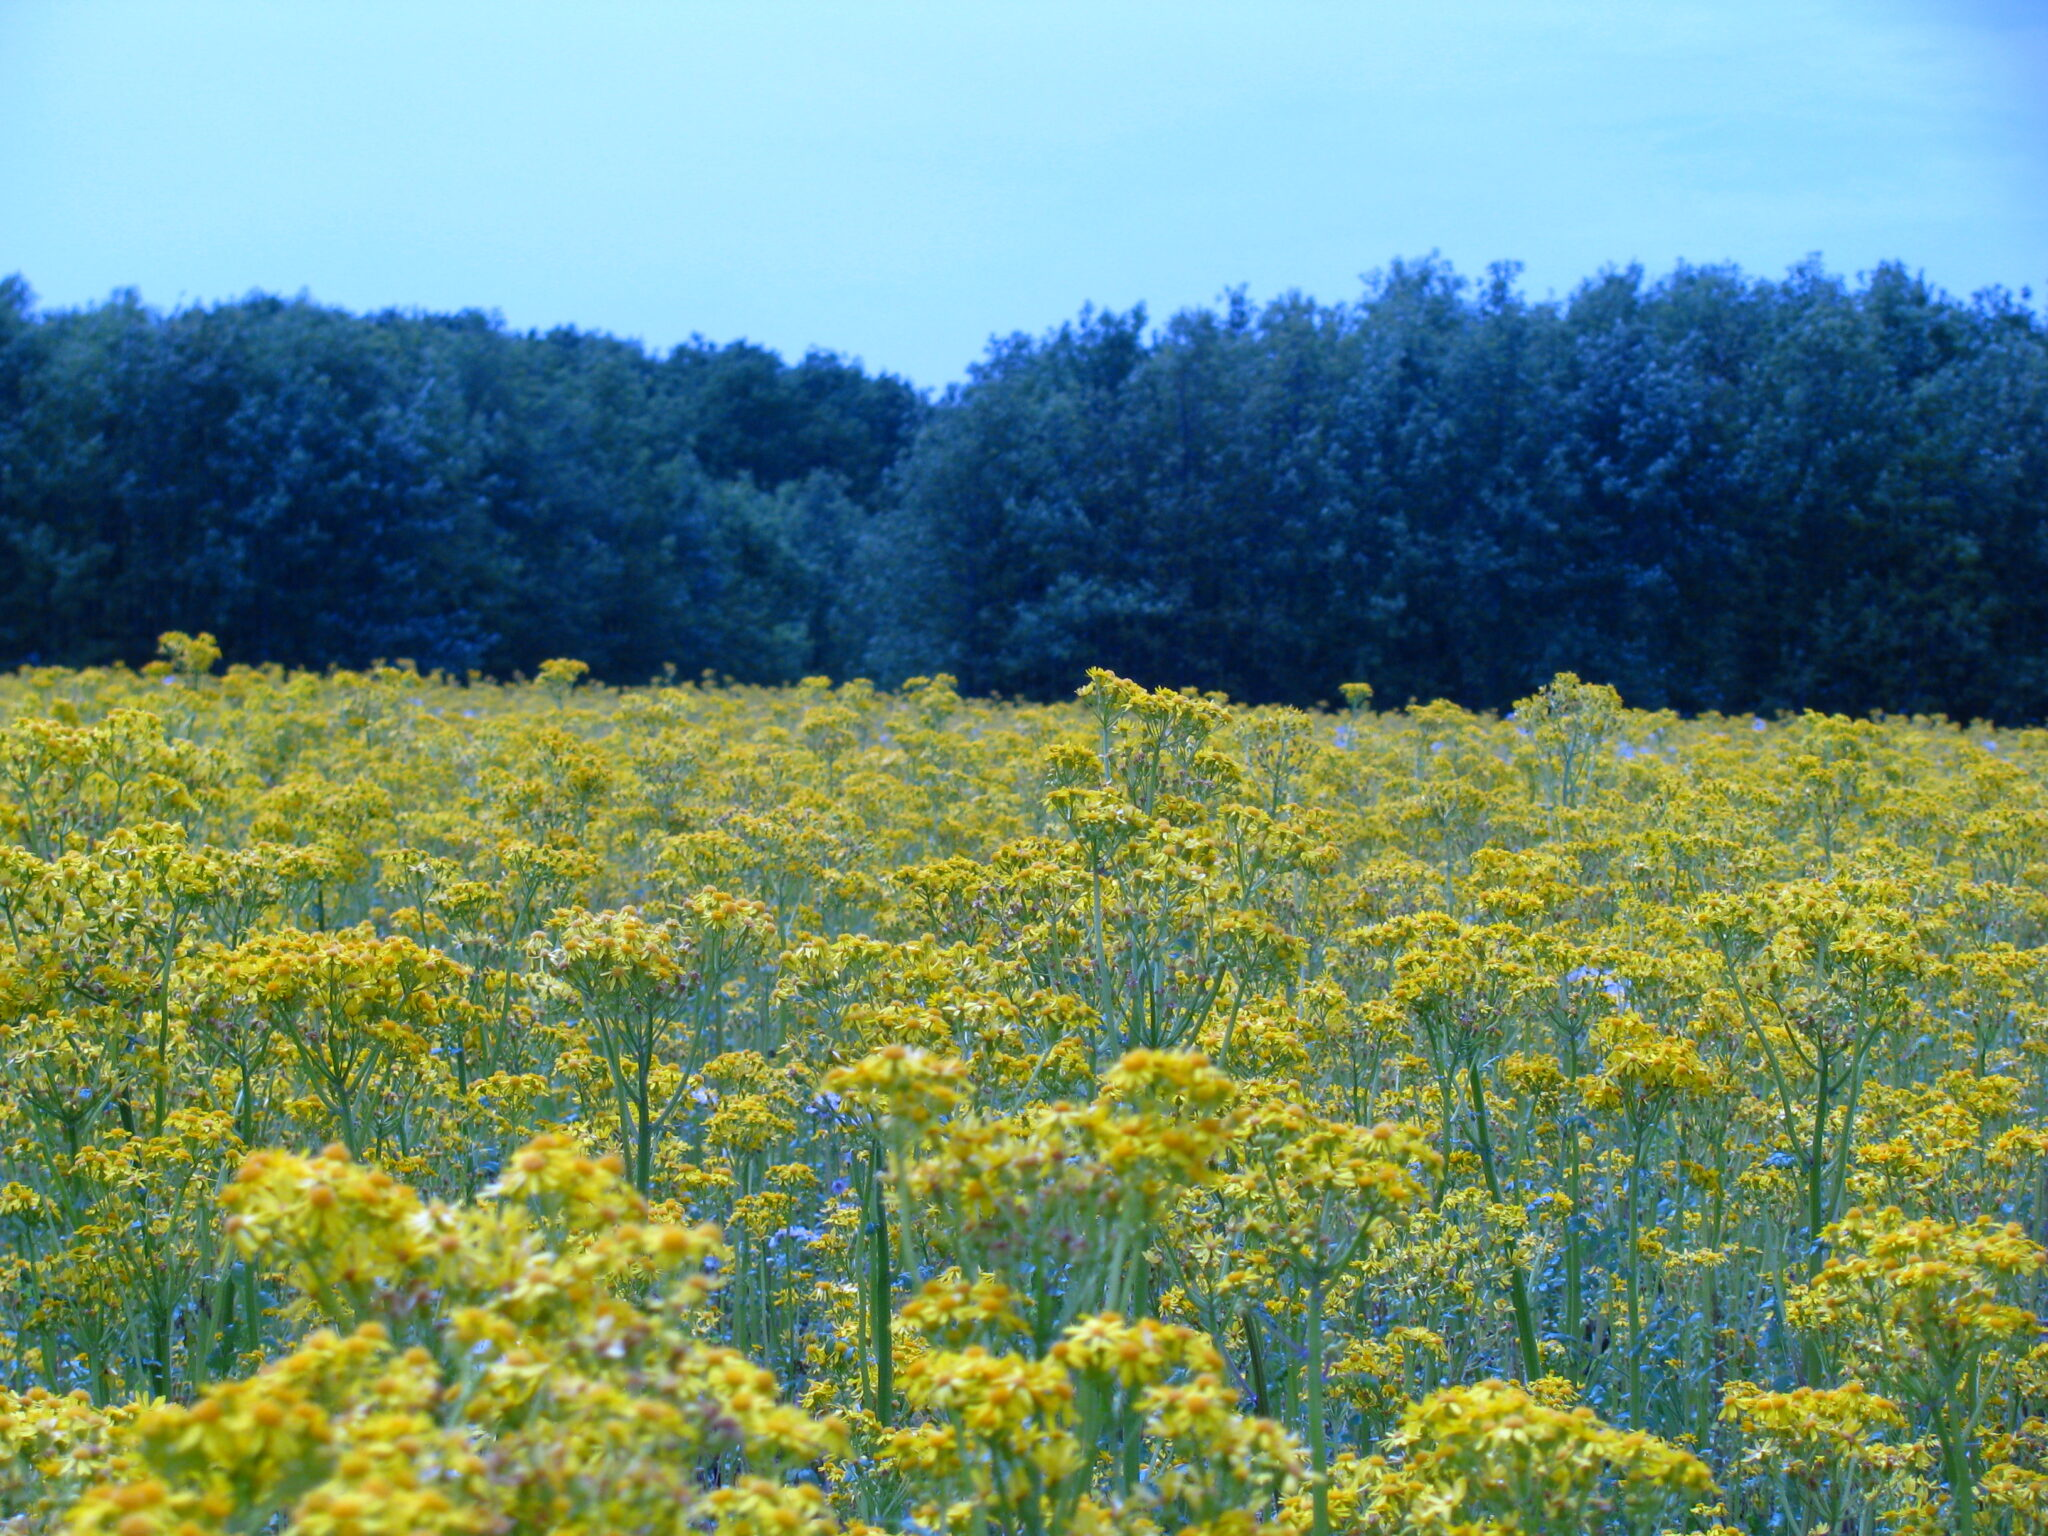 Figure 02. Field infested with cressleaf groundsel at the Southeast Purdue Agricultural Center (Photo: Glenn Nice).